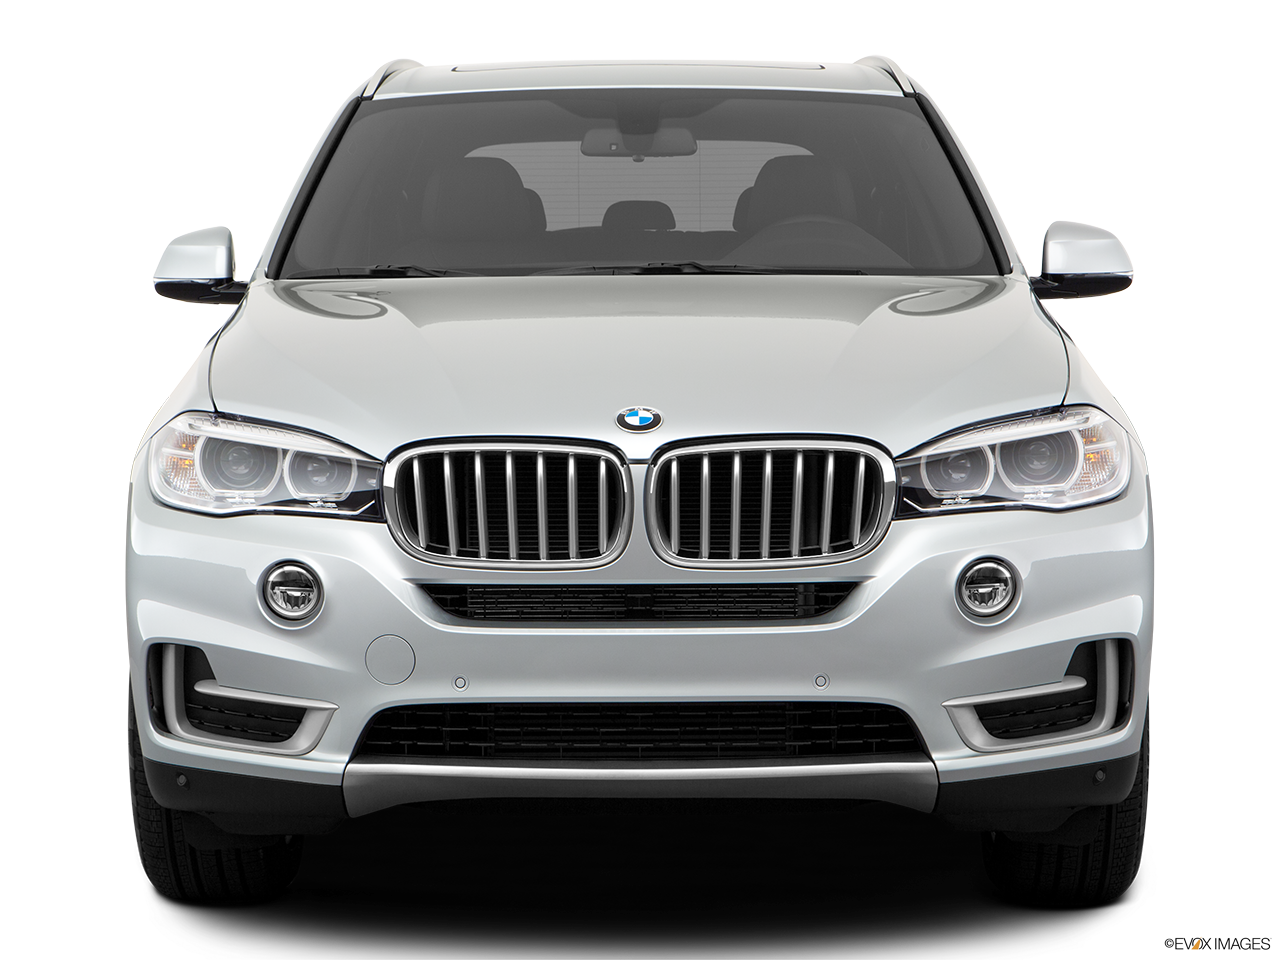 Front view of the BMW X5